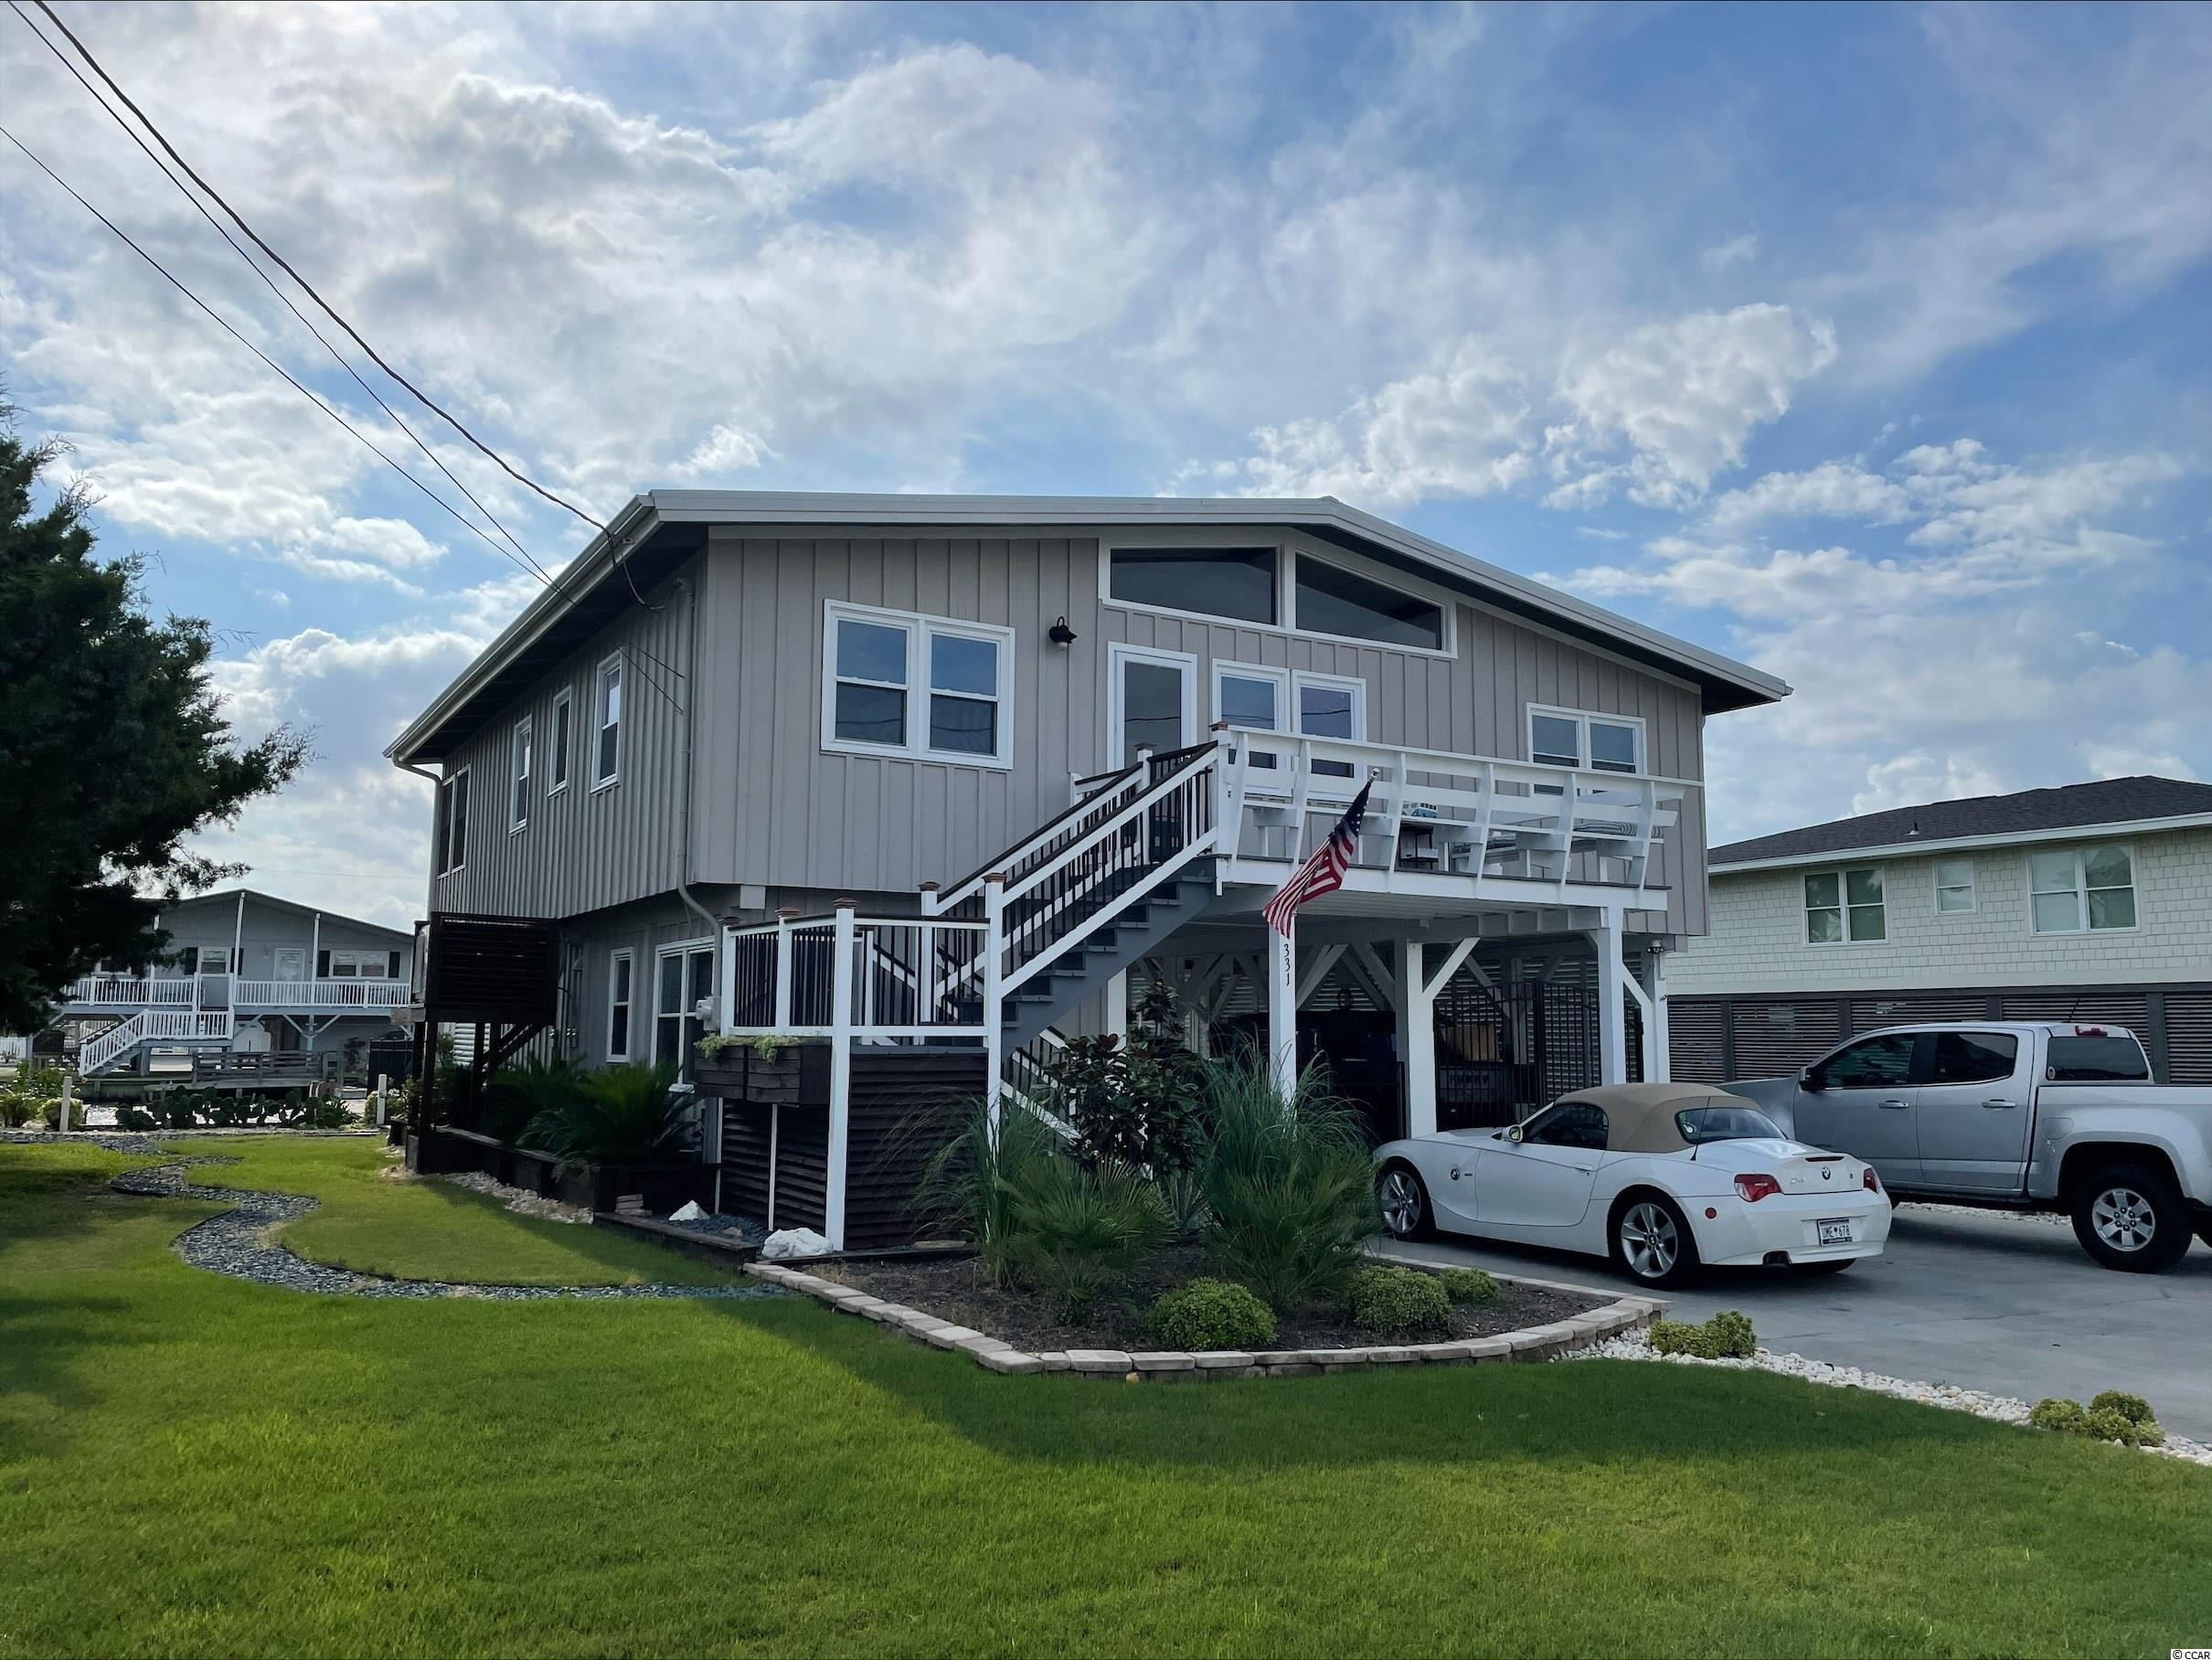 More photos comin soon. This raised beach home located in beautiful Cherry Grove area of NMB is a must see! The home boasts an approximately 9500 square foot lot on the inlet, a private boat dock/slip, metal roof and has 3 bedrooms and 2.5 baths. The home has been updated and will not disappoint! New sprinkler system (1 year old) in the home and irrigation outside the home. Washer and dryer convey the washer is 2 years old. Newer tankless water heater (3 years old). Fenced backyard offers a great space for playtime. Way too many upgrades and options to mention! Schedule your showing today. Don't miss out on your opportunity to own a slice of paradise just blocks from the ocean! Square footage is approximate and not guaranteed. Buyers responsible for verification.